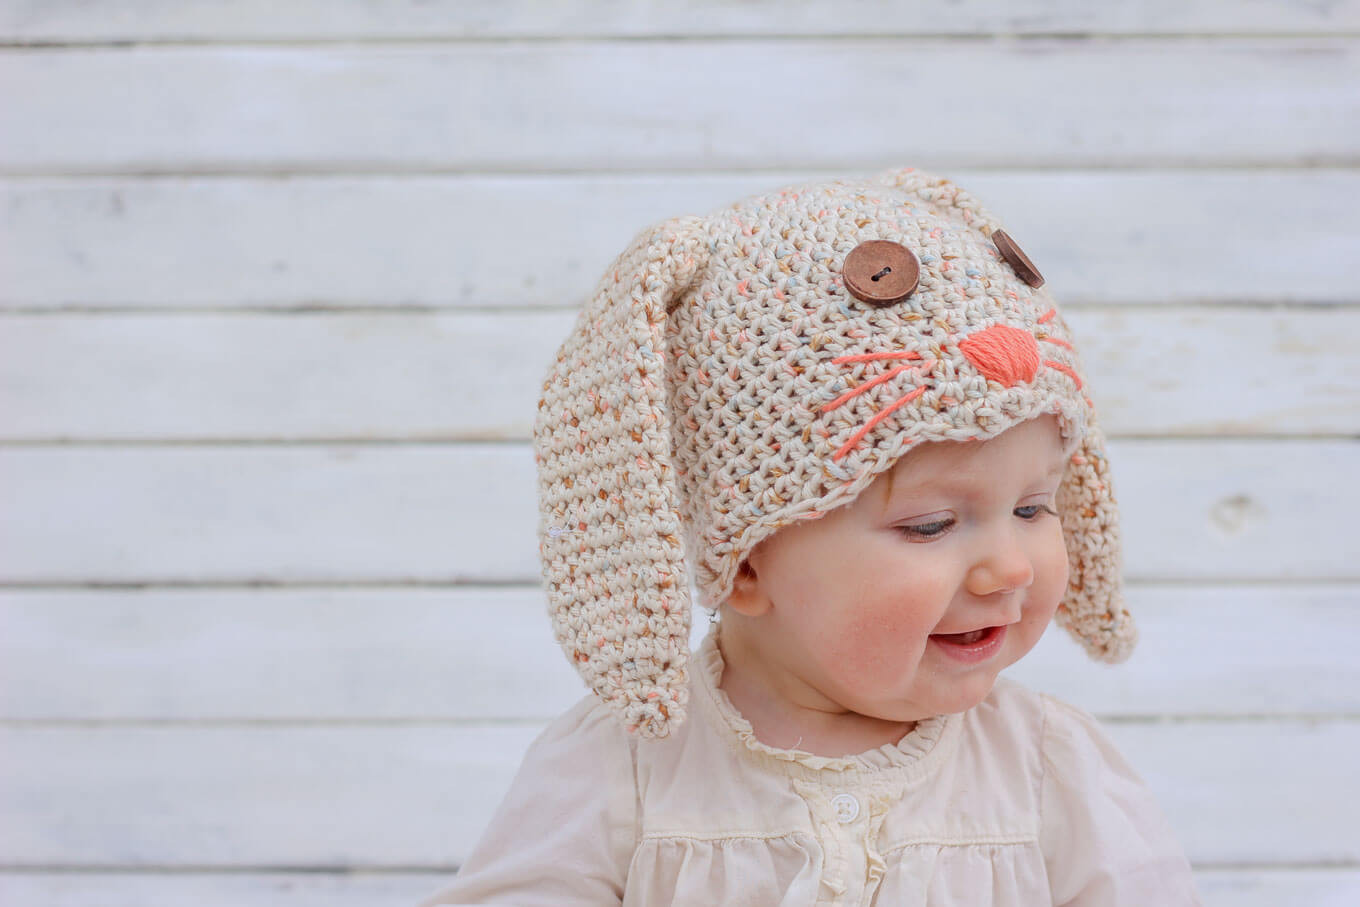 Newborn Baby Hat Crochet Pattern Fresh Free Crochet Bunny Hat Pattern Newborn toddler Make Of Superb 44 Pictures Newborn Baby Hat Crochet Pattern